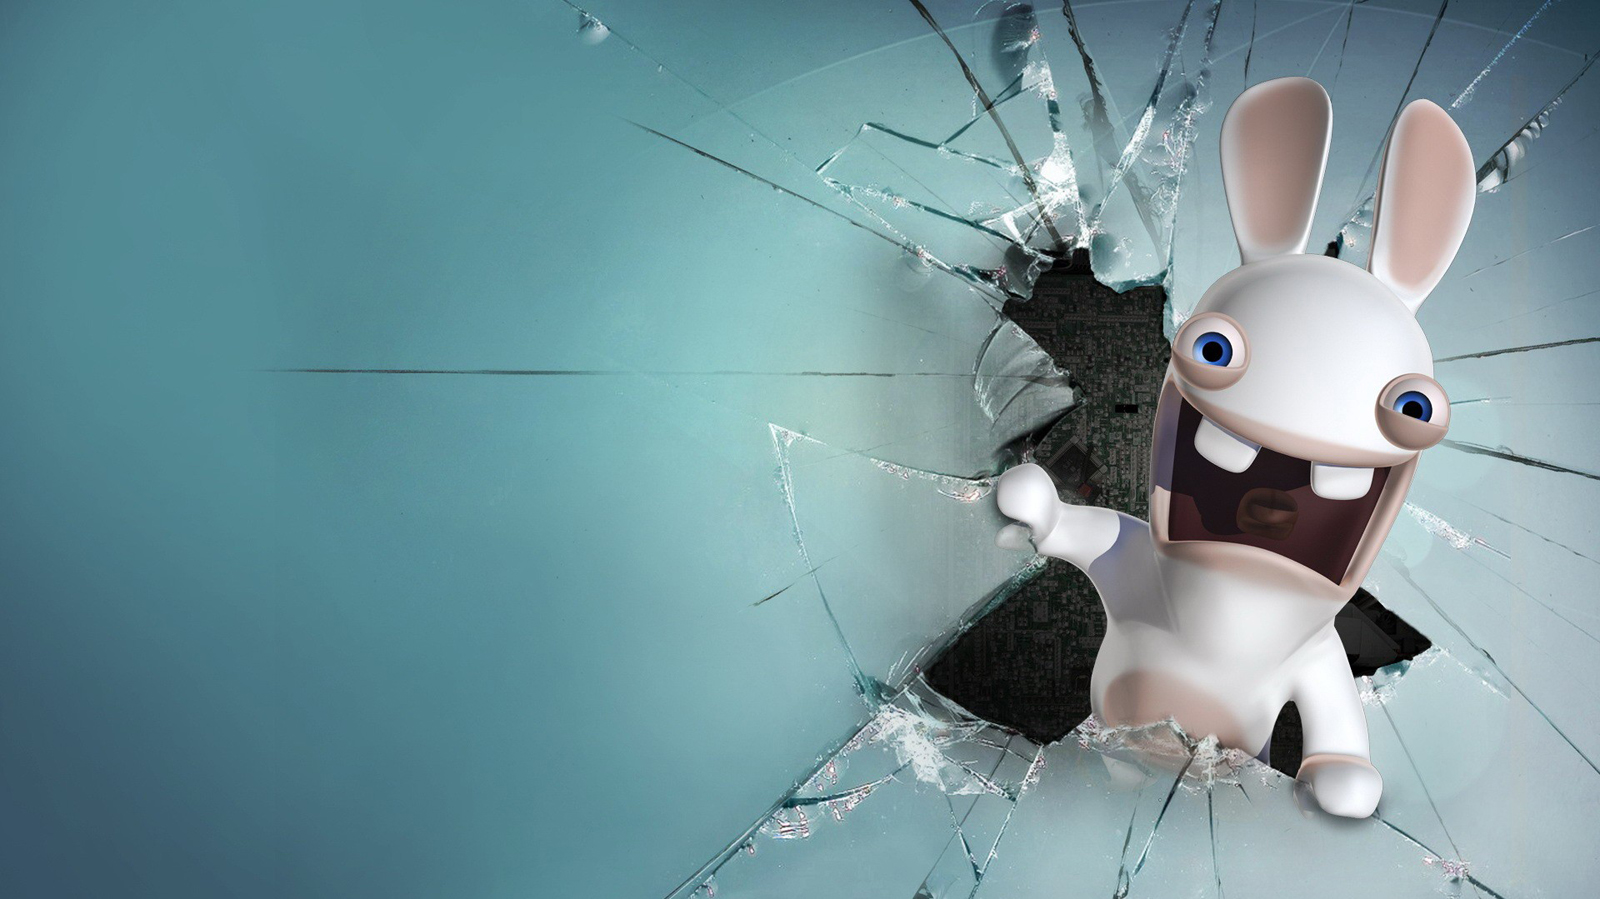 Funny screensavers and wallpaper backgrounds wallpapersafari - Funniest screensavers ...